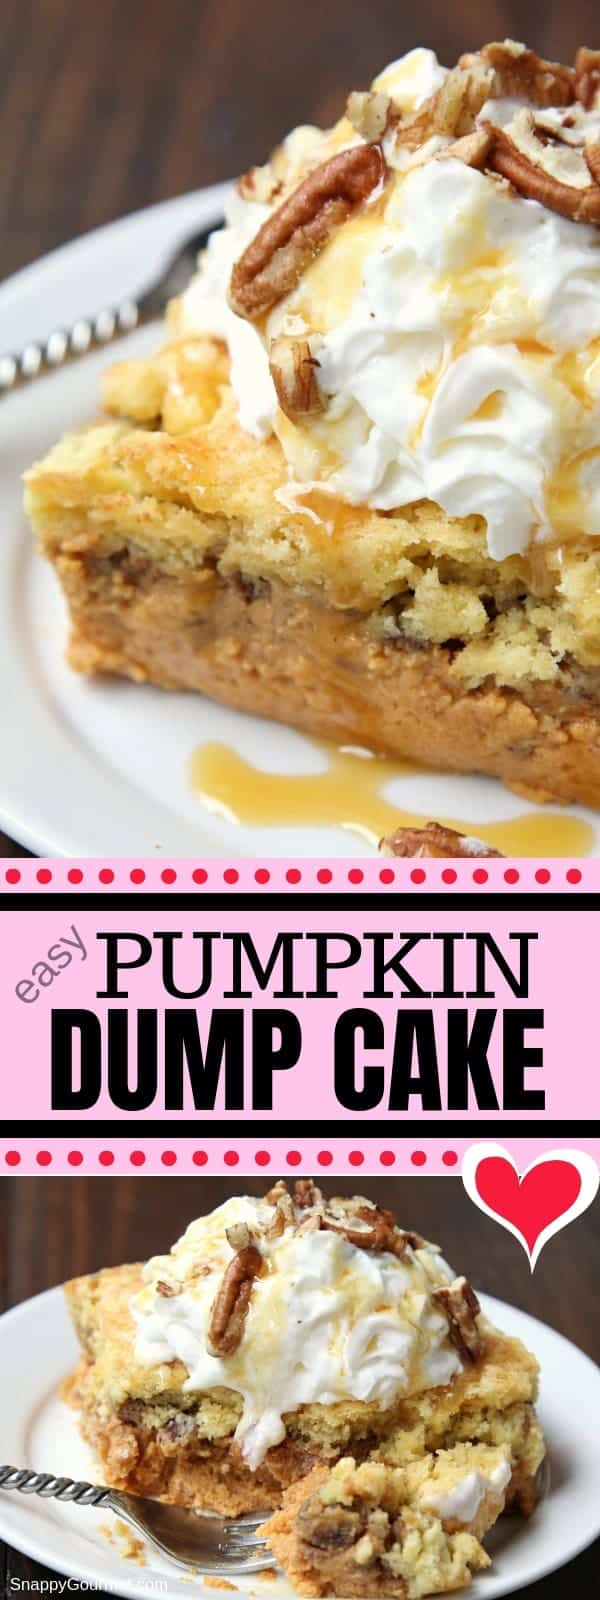 Pumpkin Dump Cake - an easy dump cake recipe that is a cross between pumpkin pie and pumpkin crunch cake